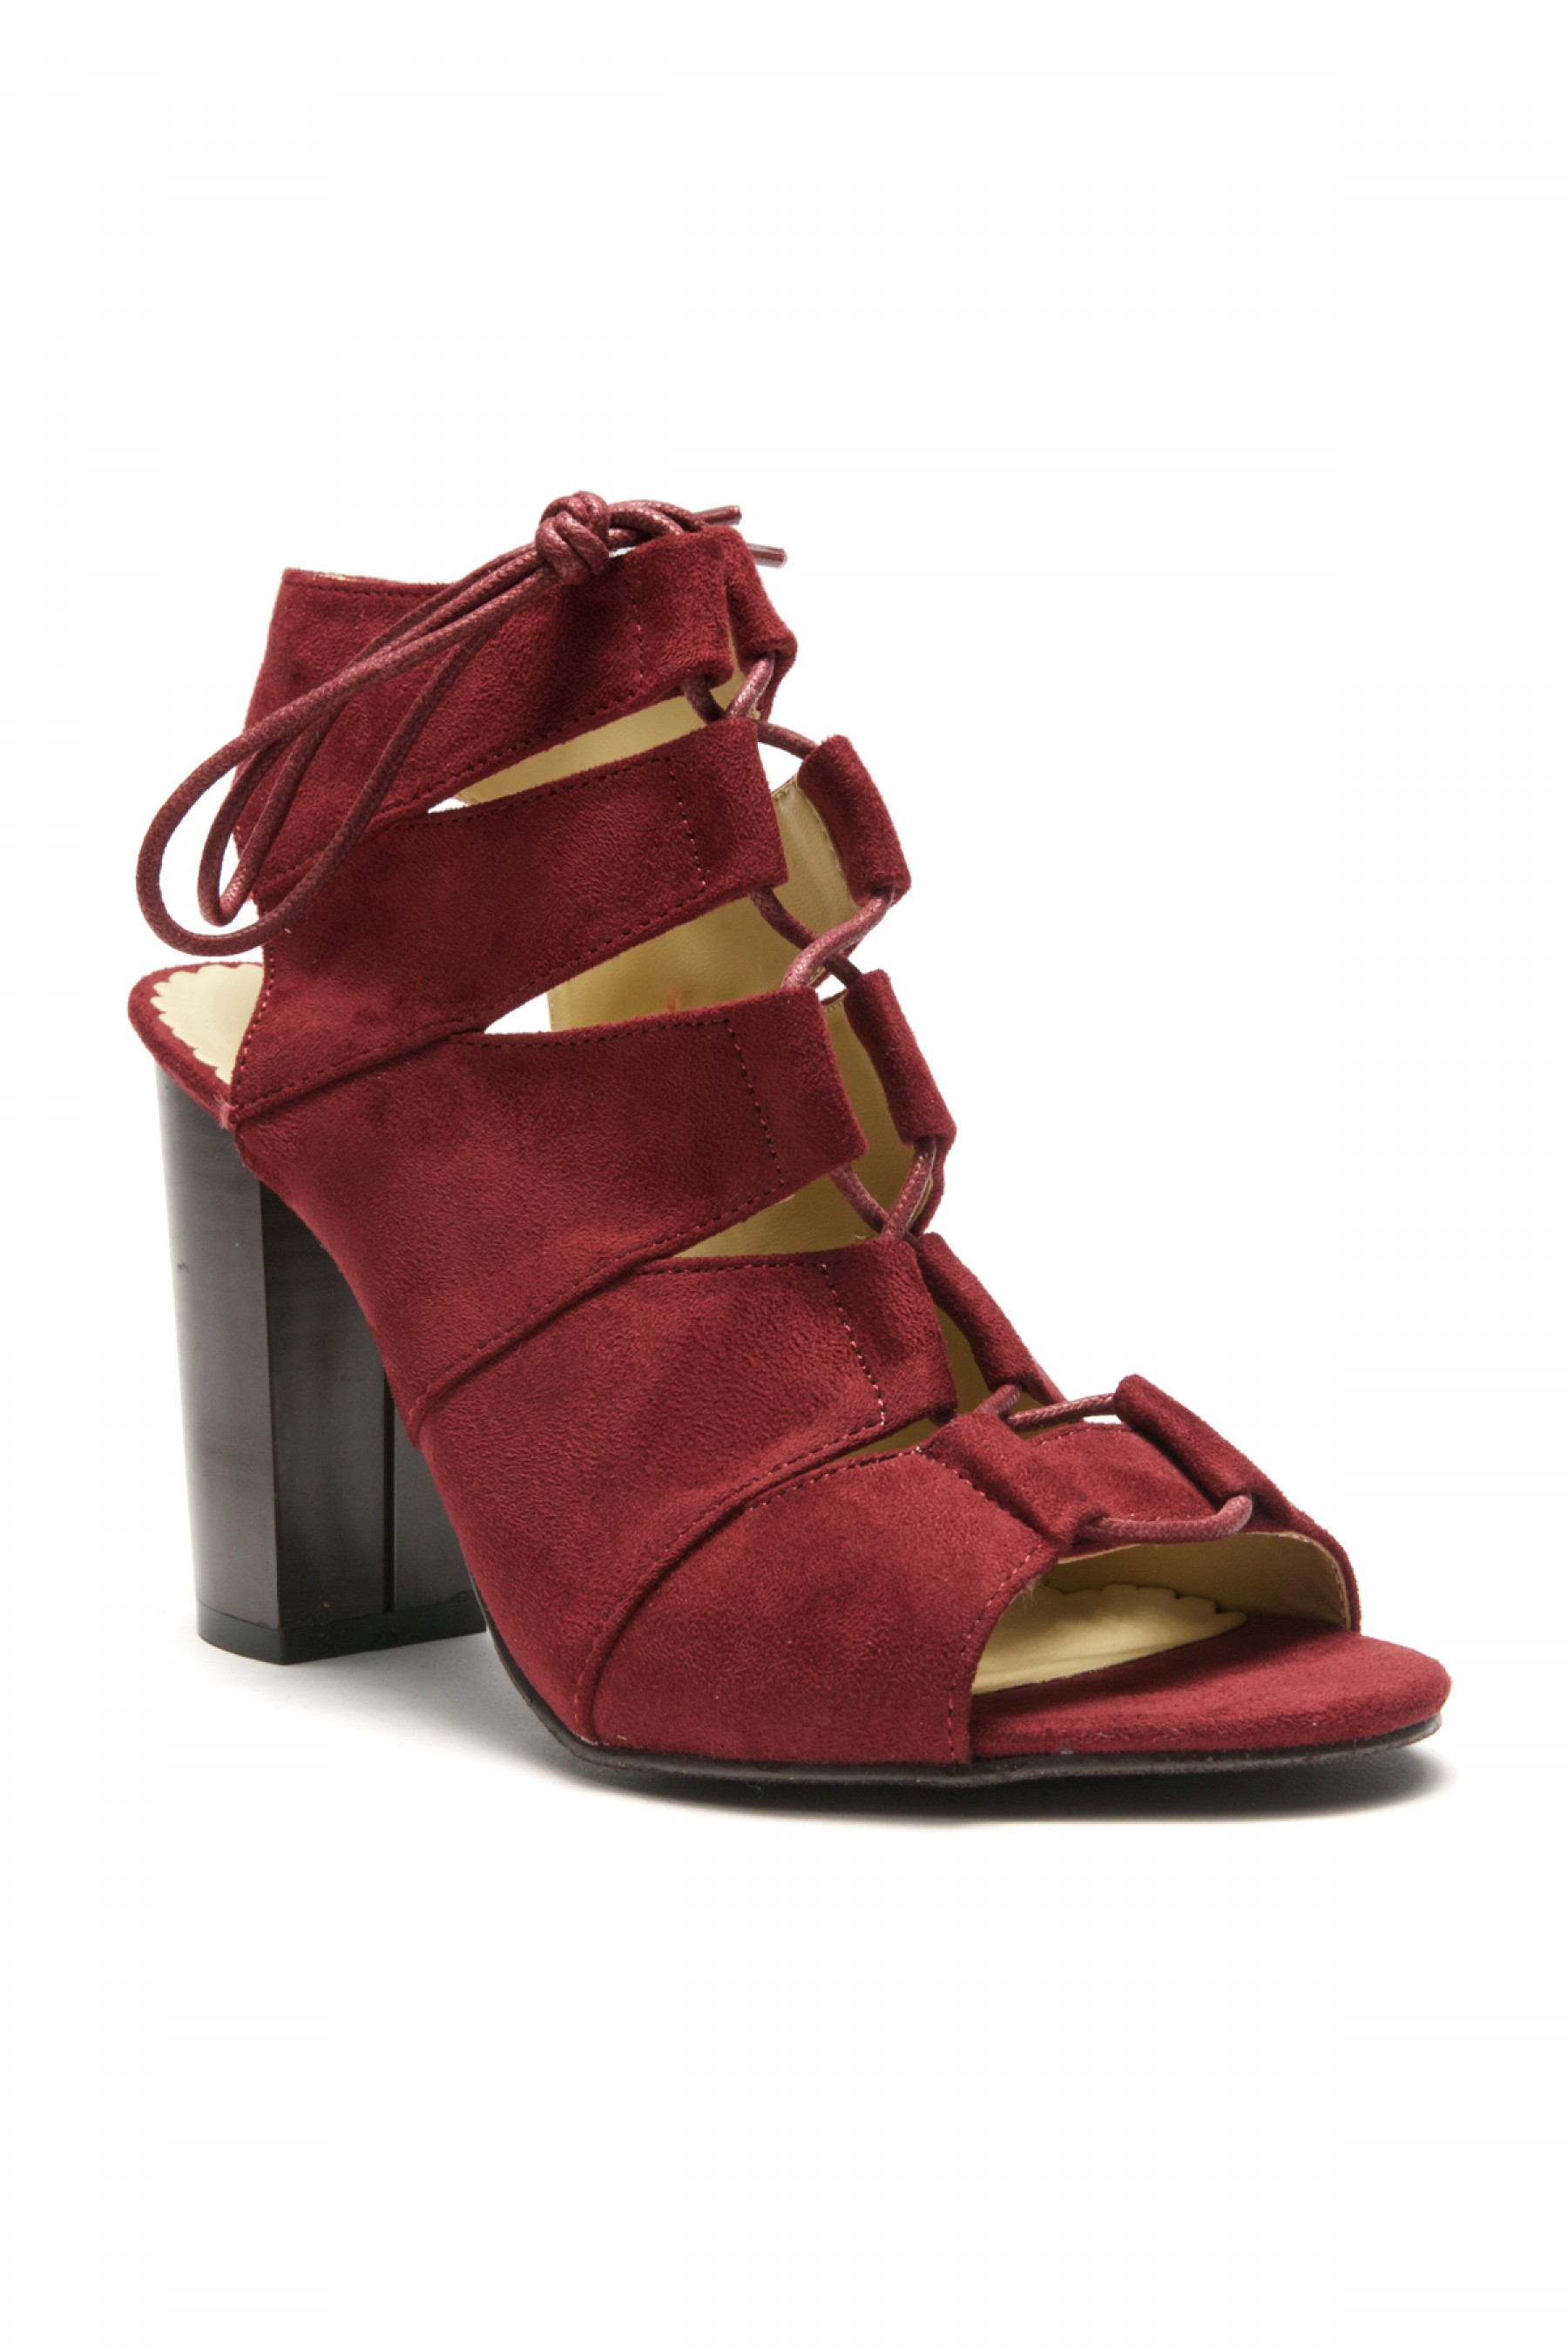 HerStyle Carnibbi open toe, chunky heel, a gladiator inspired strappy with front lace-up (Burgundy)